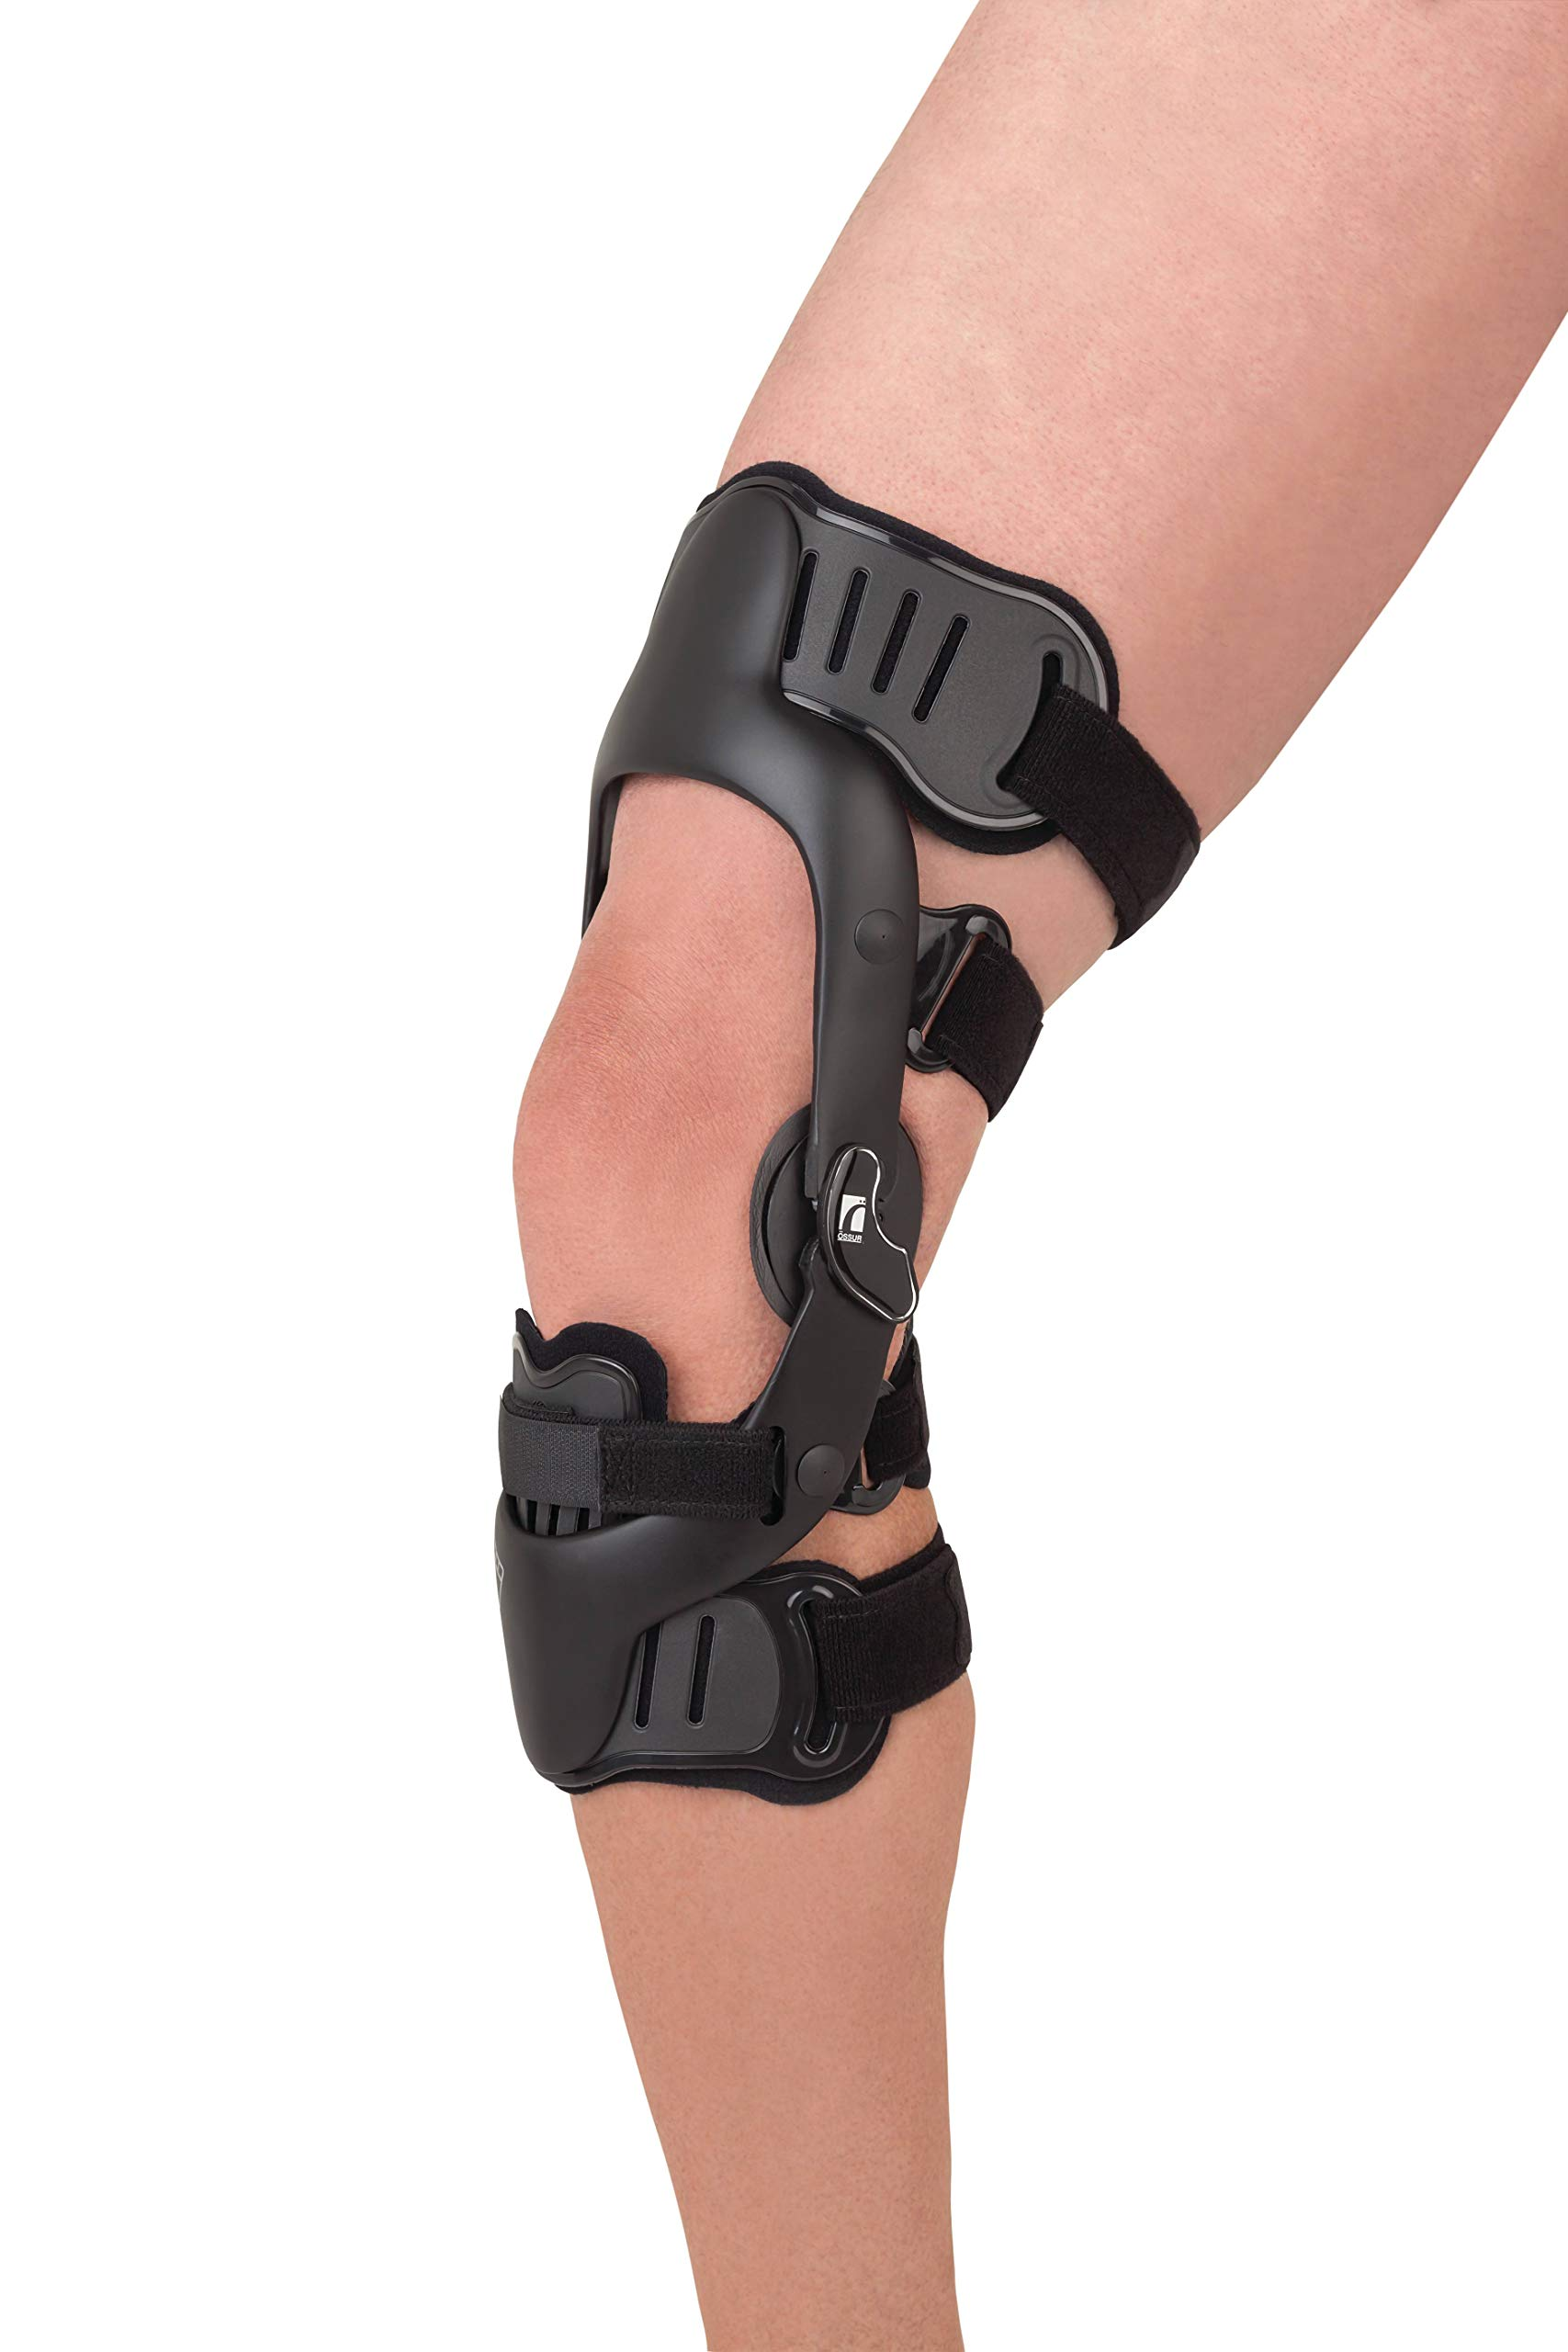 Ossur CTi OTS Knee Brace Standard Version – Maximum Support for ACL, MCL, LCL, PCL, Rotary and Combined Instabilities Injuries – for All Activity Levels (XX-Large, Right, Non PCL) by Ossur (Image #2)